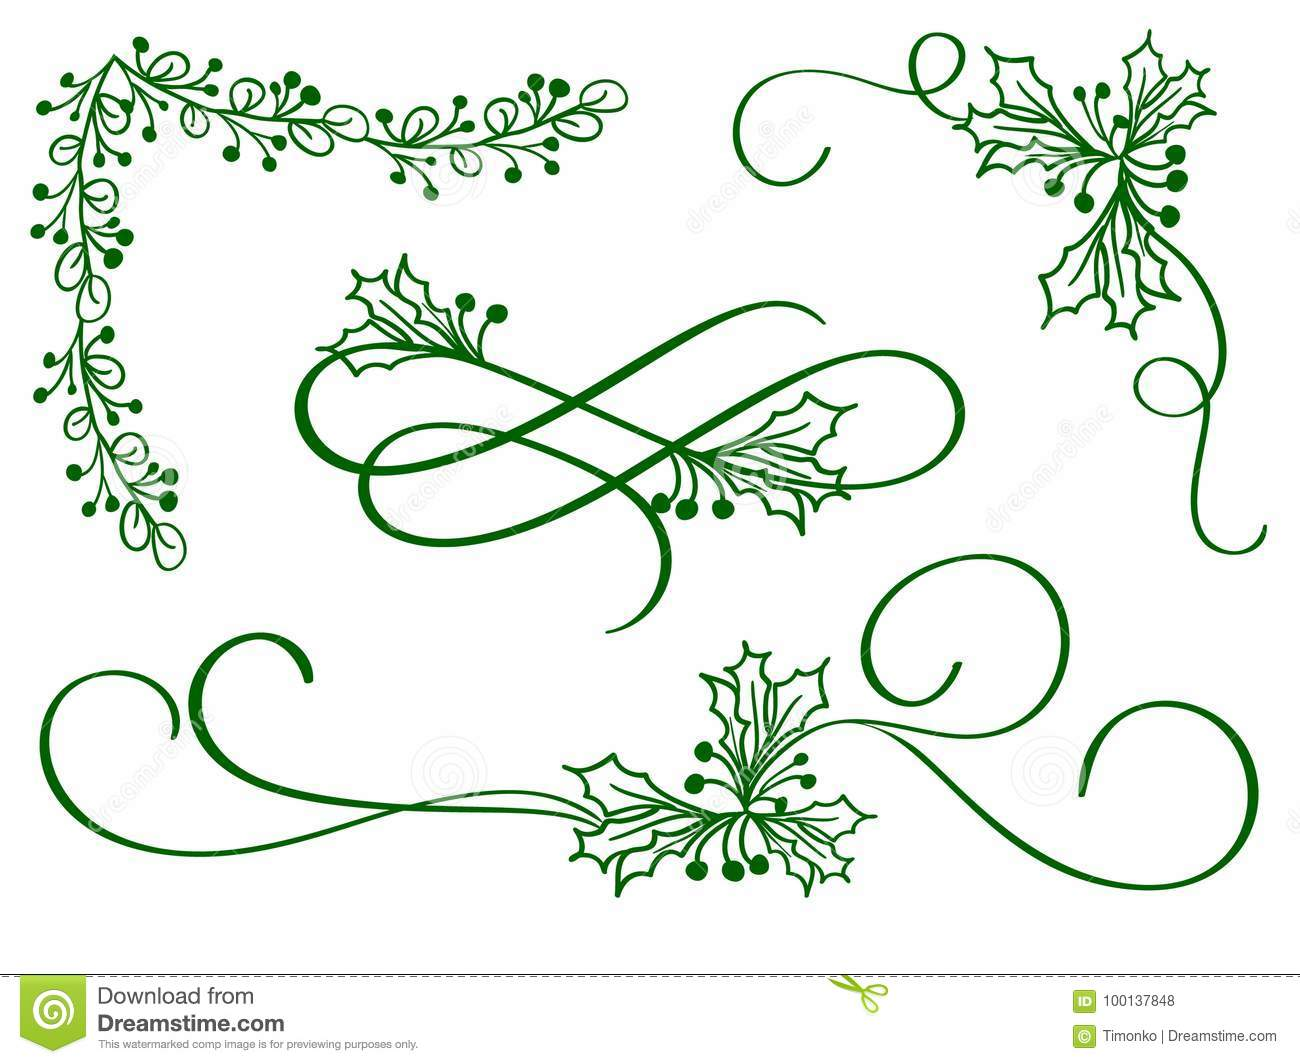 Set of green christmas calligraphy flourish art with vintage decorative whorls for design on white background. Vector